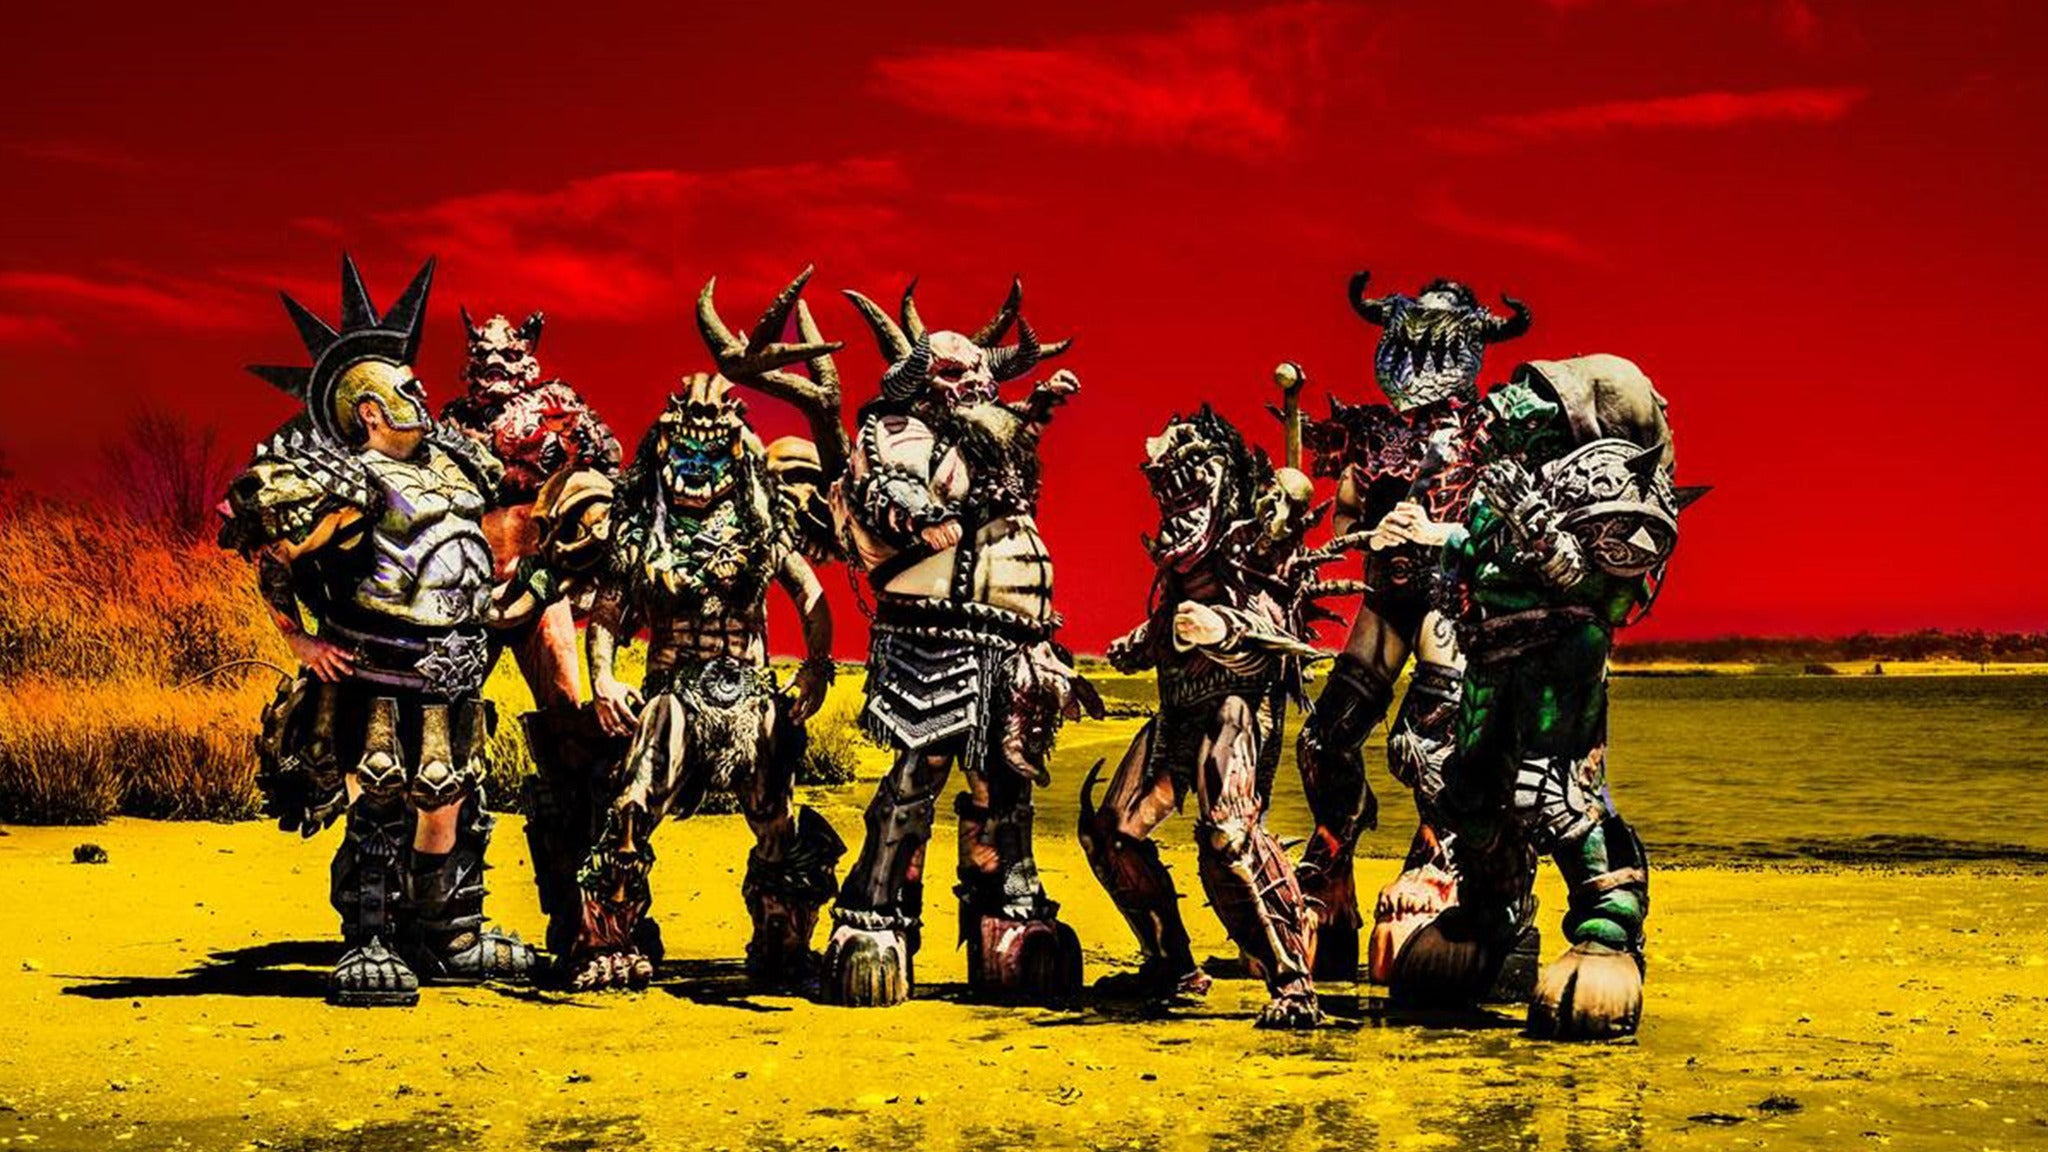 GWAR - The Blood of Gods Tour at The Ritz Ybor